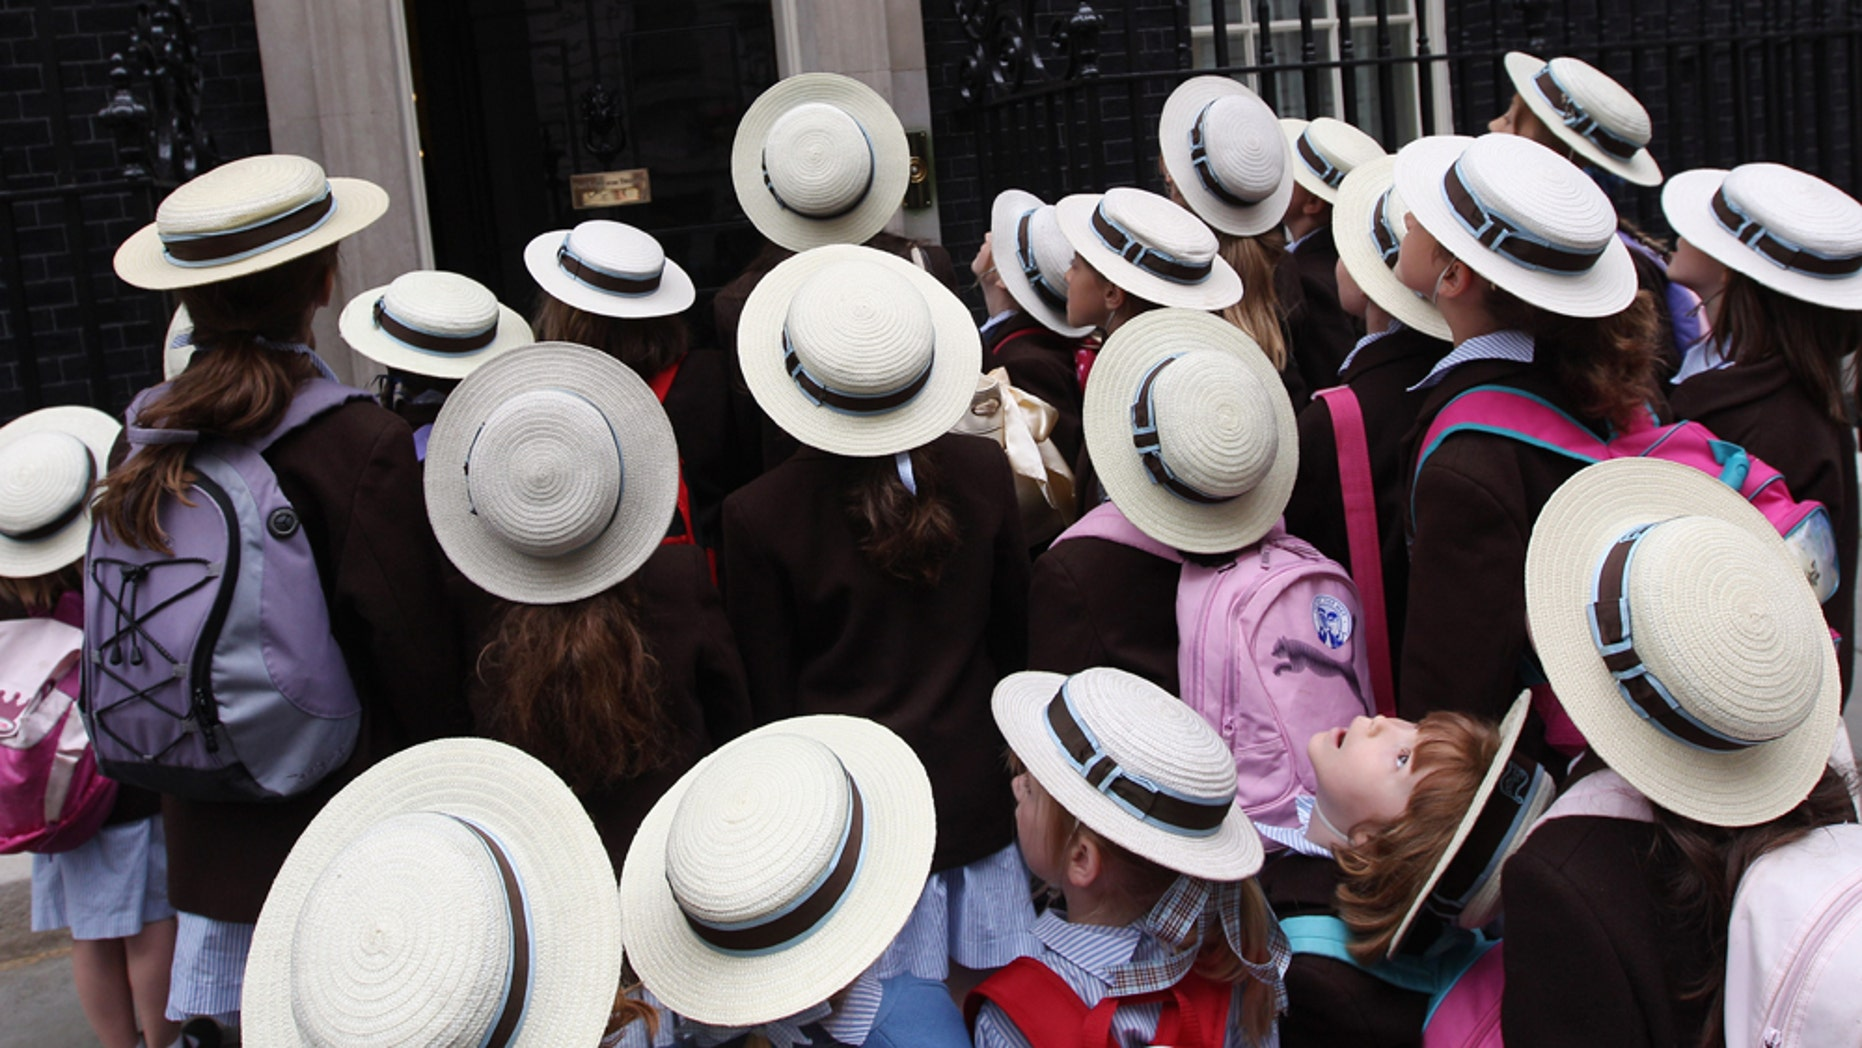 LONDON, ENGLAND - JULY 13:  Schoolchildren from St Hilda's Junior School stand outside the entrance to Number 10 while visiting Downing Street on July 13, 2010 in London, England.  (Photo by Dan Kitwood/Getty Images)